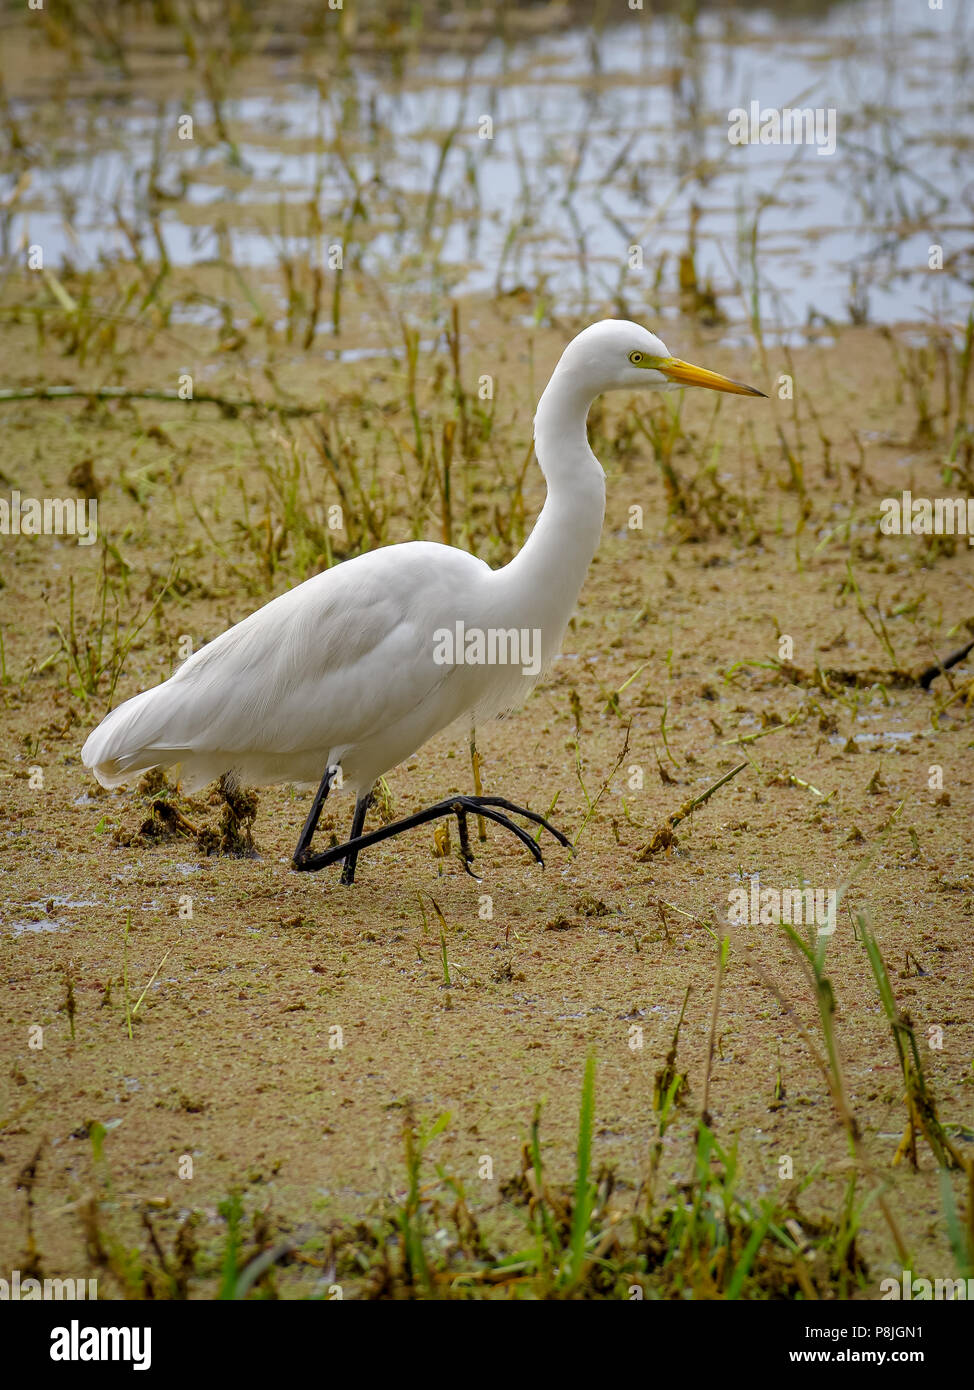 Egret at Bharatpur Reserve - Stock Image